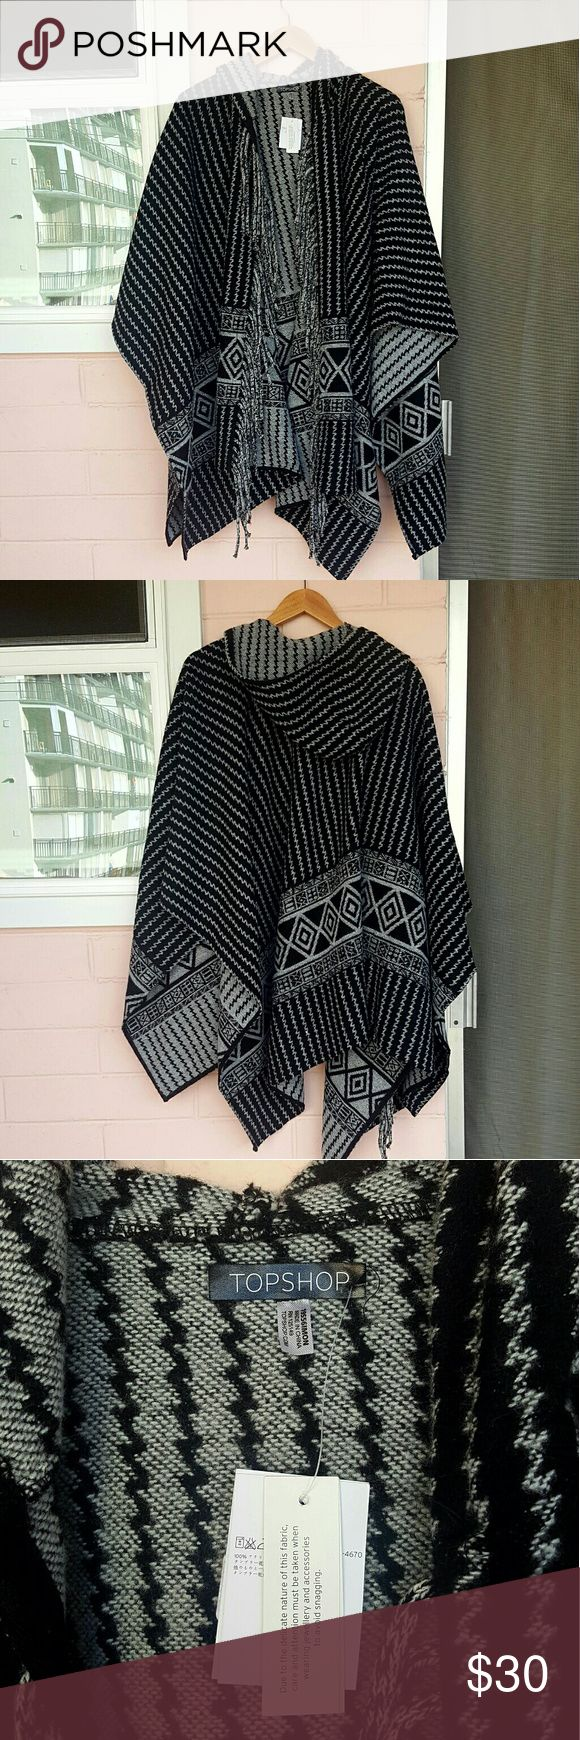 TOPSHOP HOODED PONCHO *black and gray hooded poncho *one size *brand new with tags *perfect to wear or use as a blanket for chilly nights *comes from a smoke-FREE & pet-FREE home Topshop Jackets & Coats